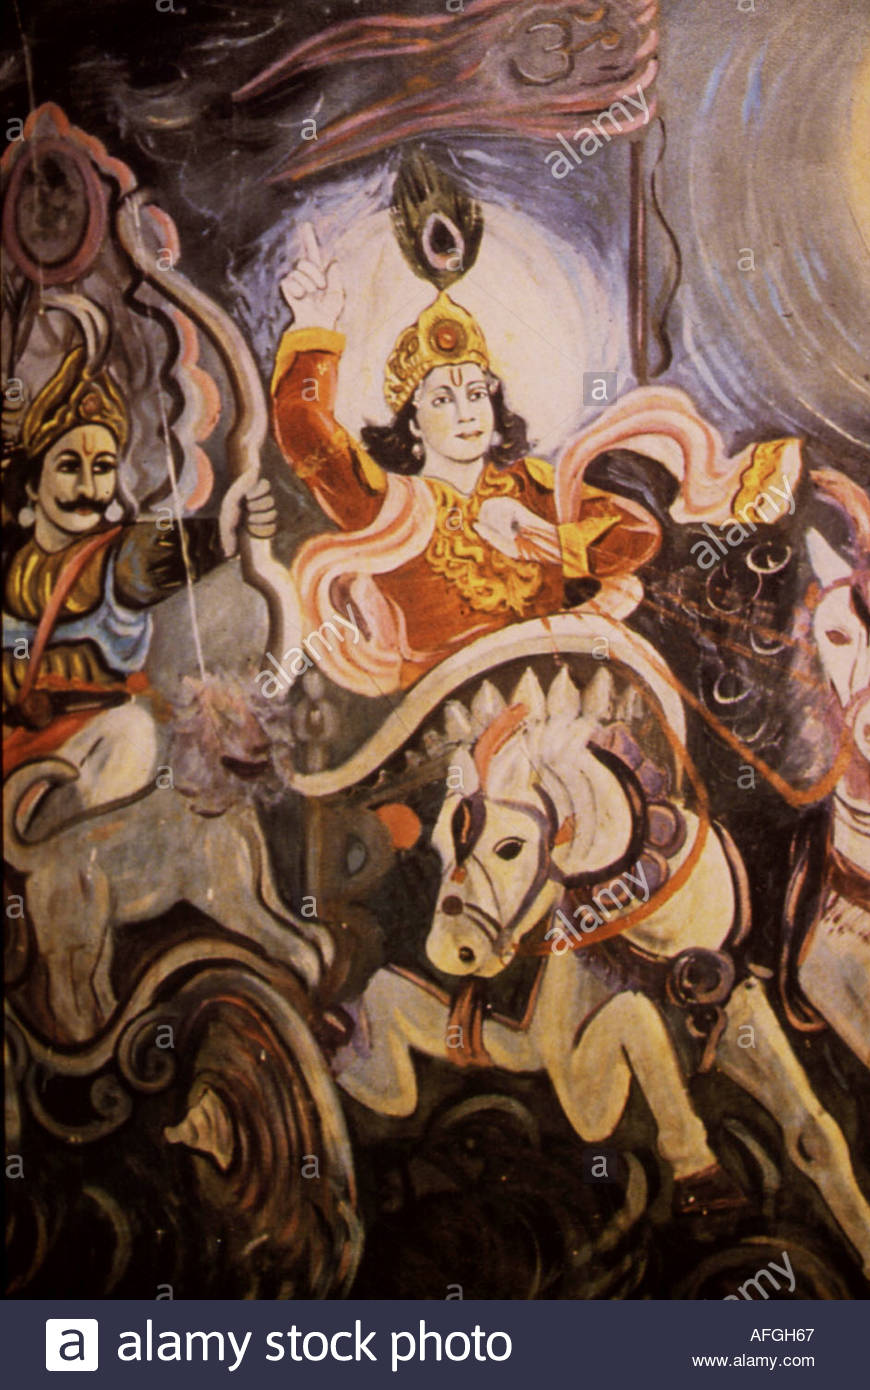 indian folk art depicting lord krishna with arjuna riding in the chariot AFGH67